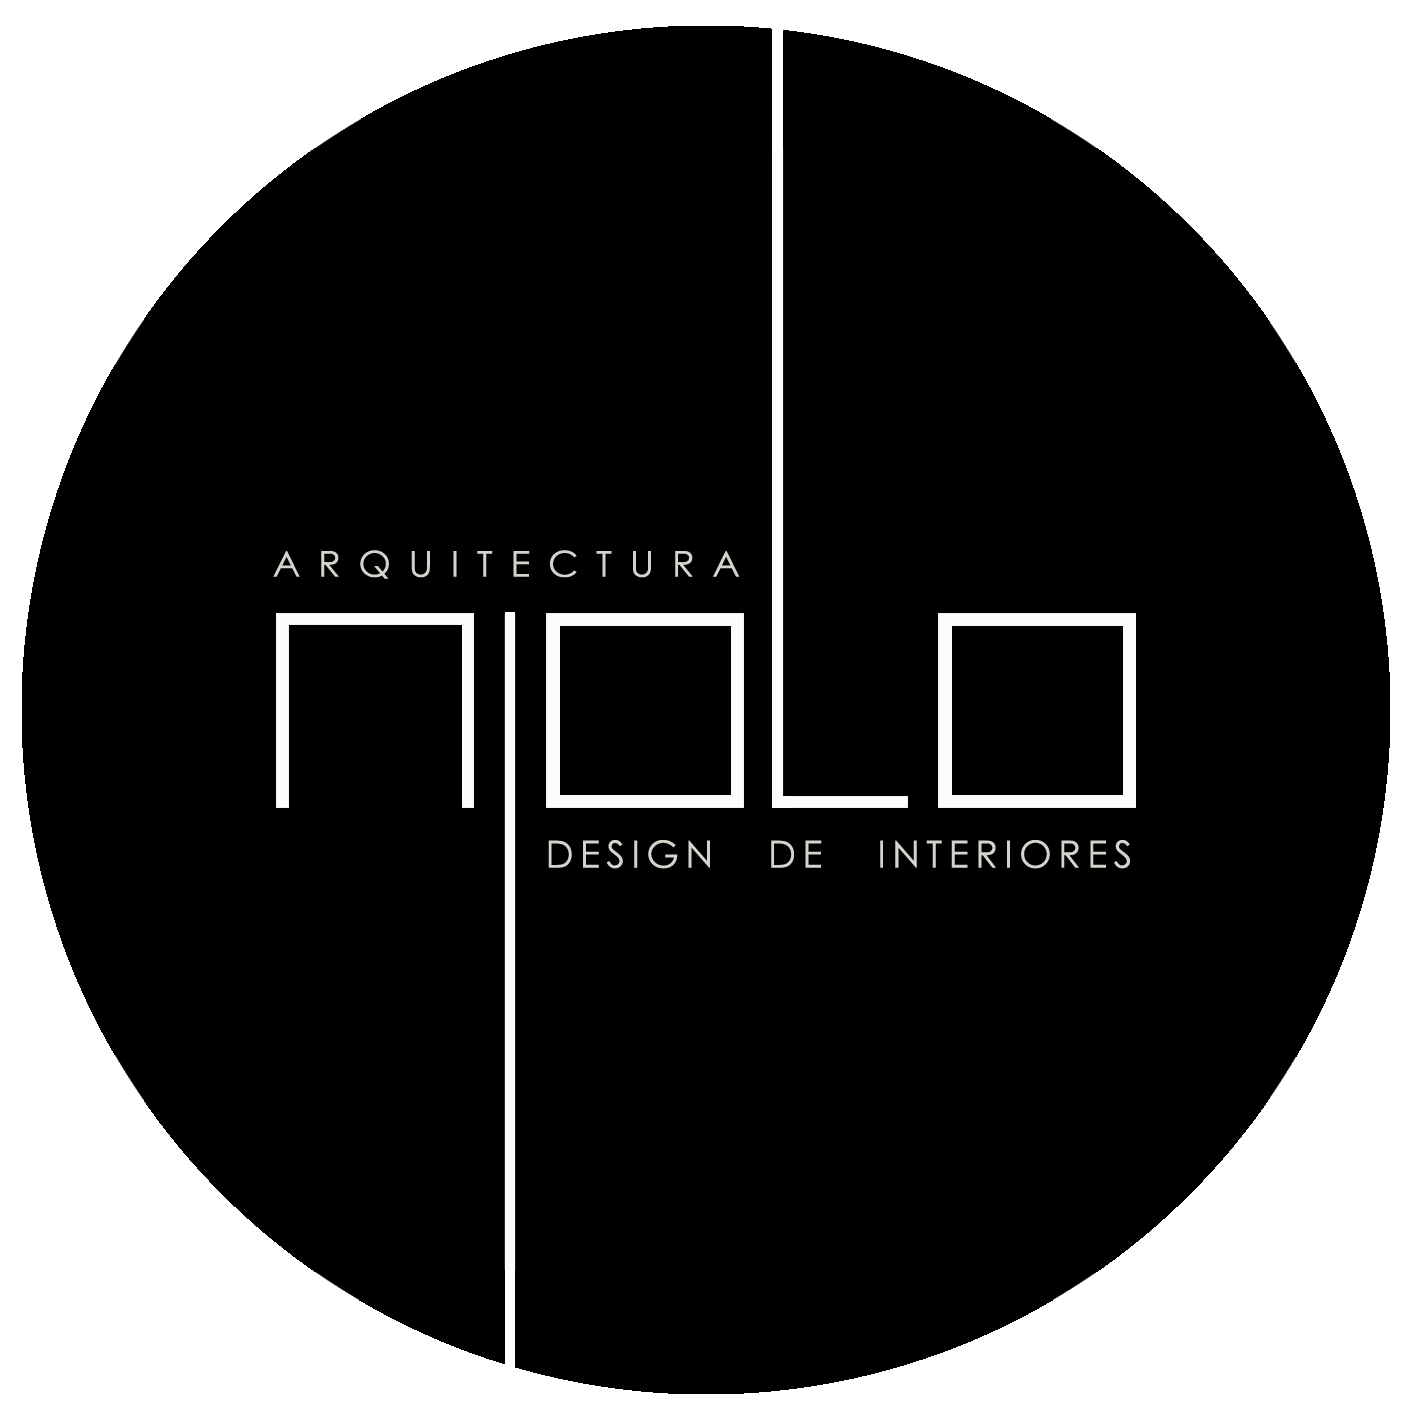 About miolo arquitectura design de interiores miolo for Arquitectura and design